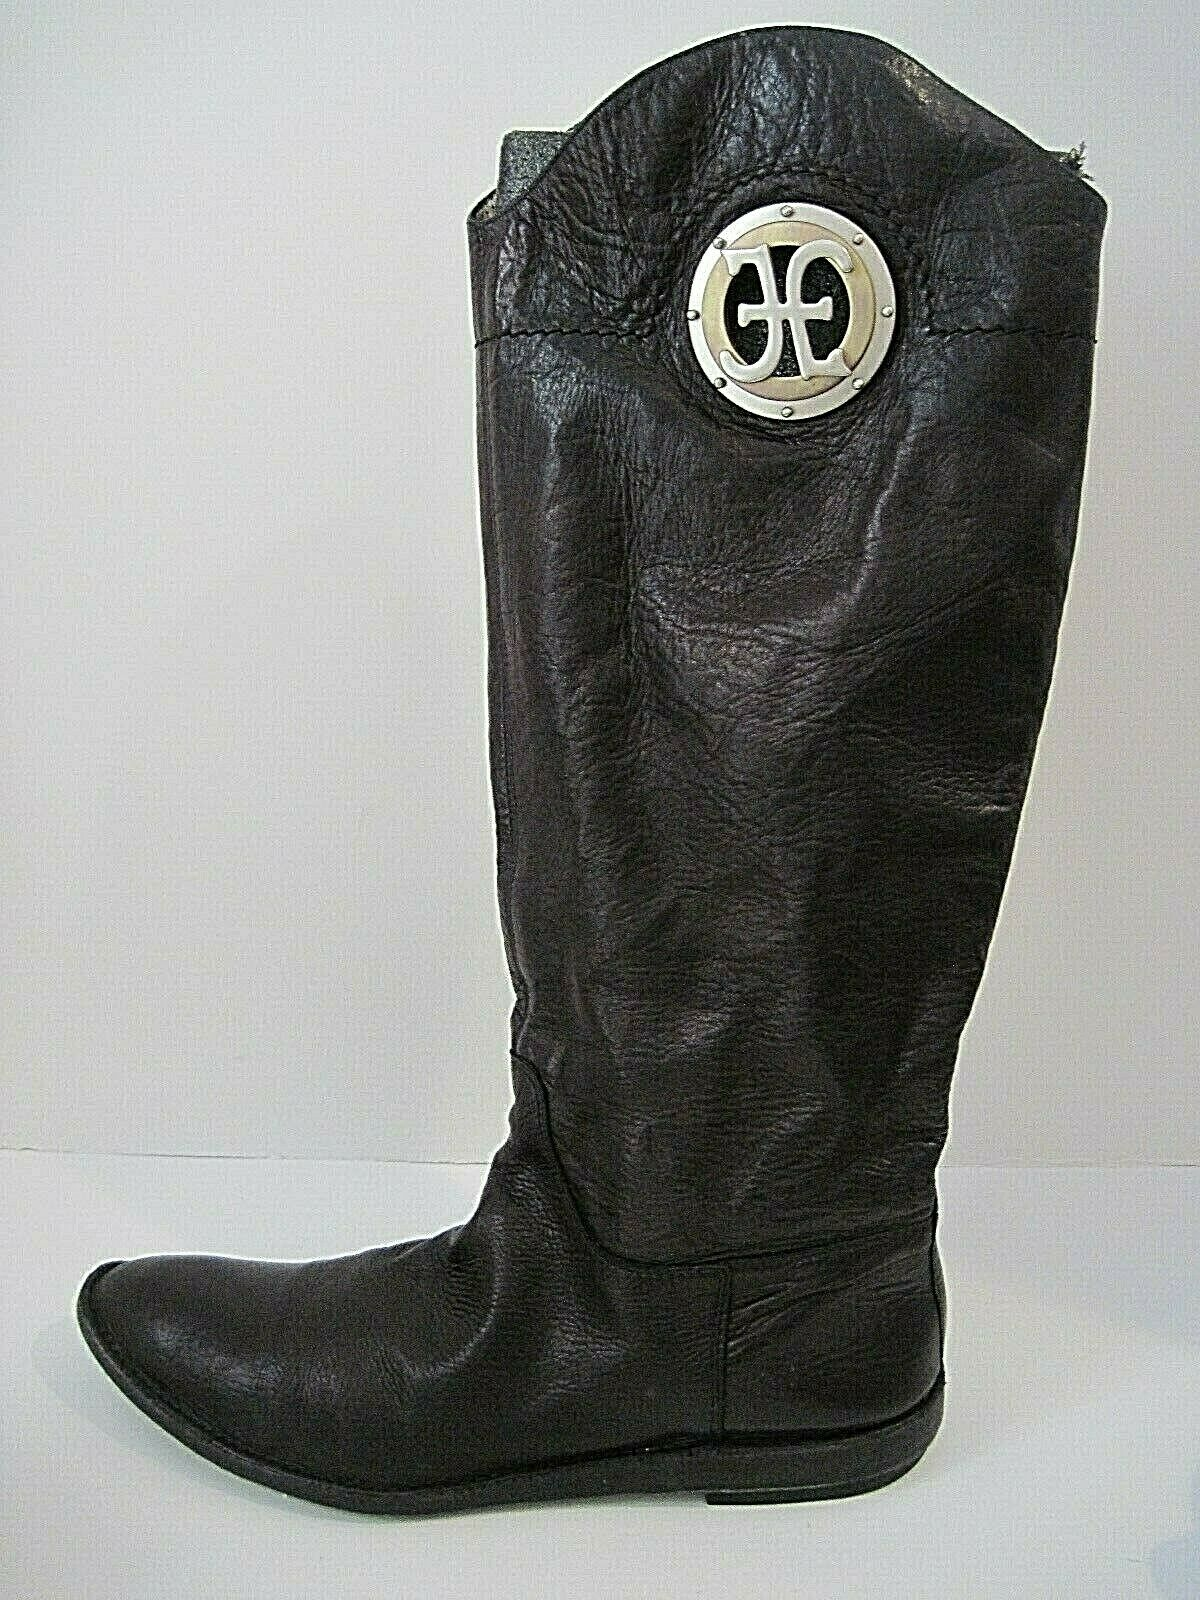 FABI  Black Leather Pull-On Knee Length Boots Silver Tone Brass Logo Sz 40